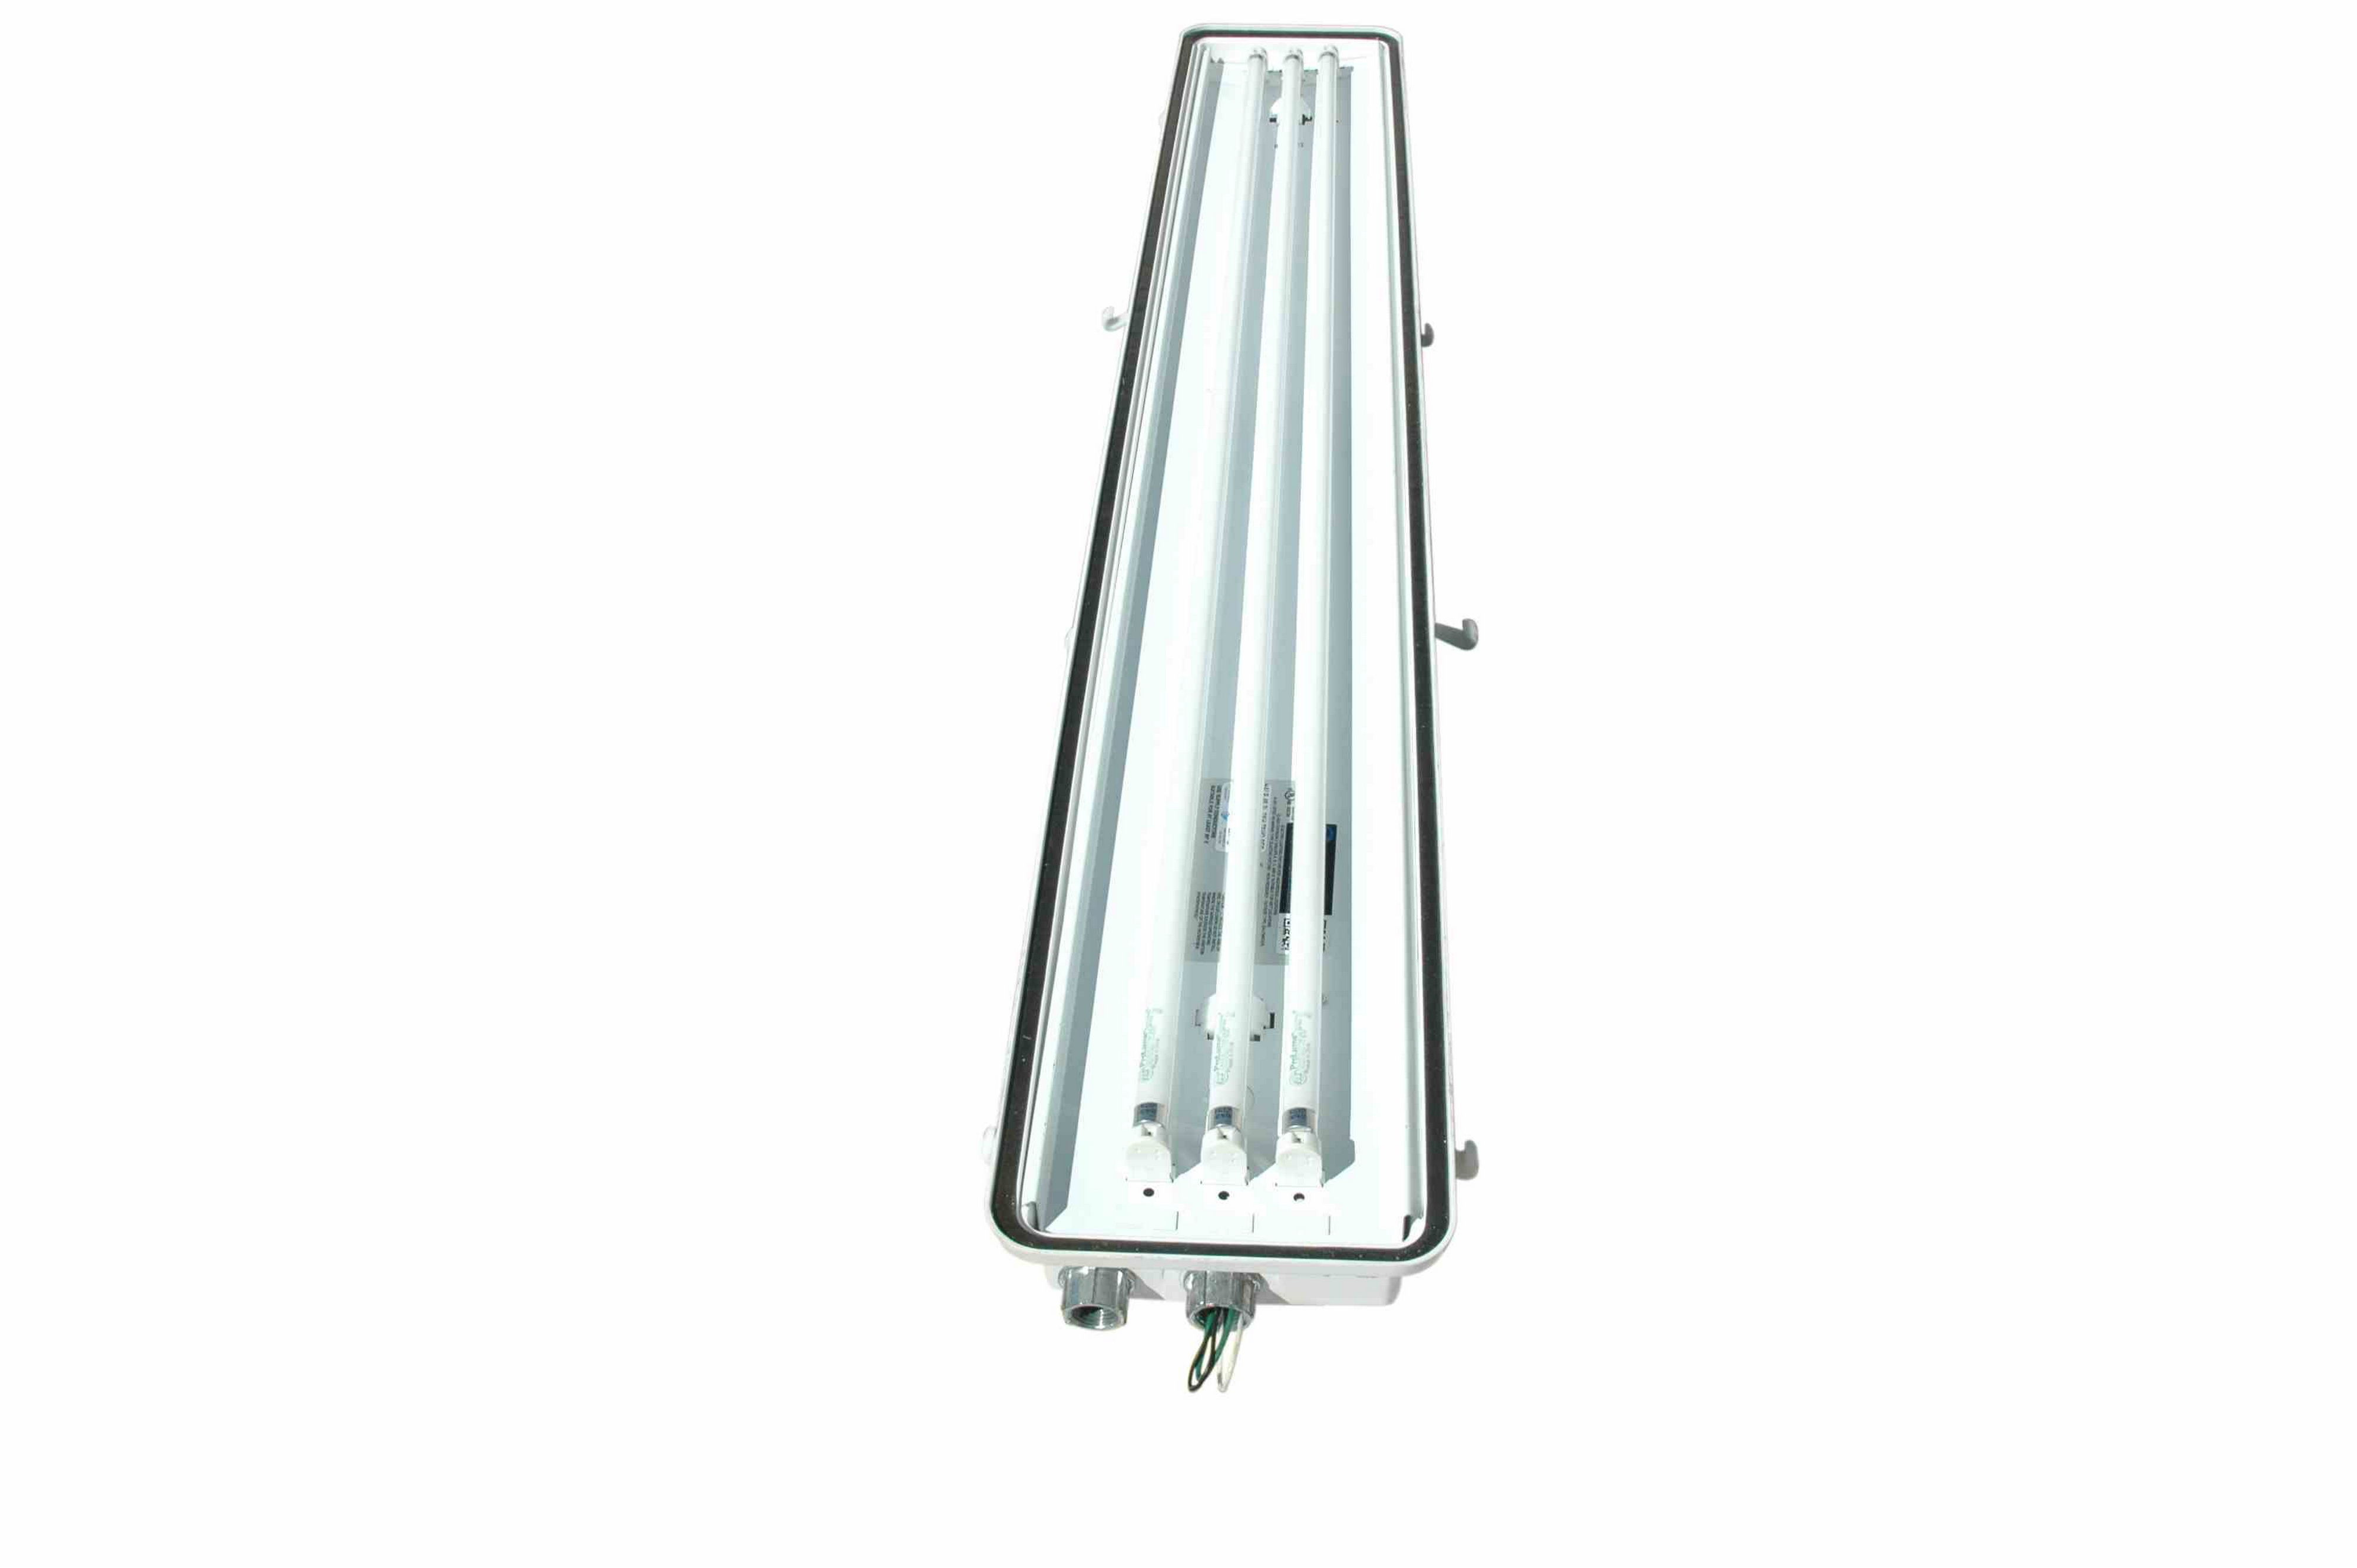 Class 1 Division 2 Emergency Failsafe Fluorescent Light